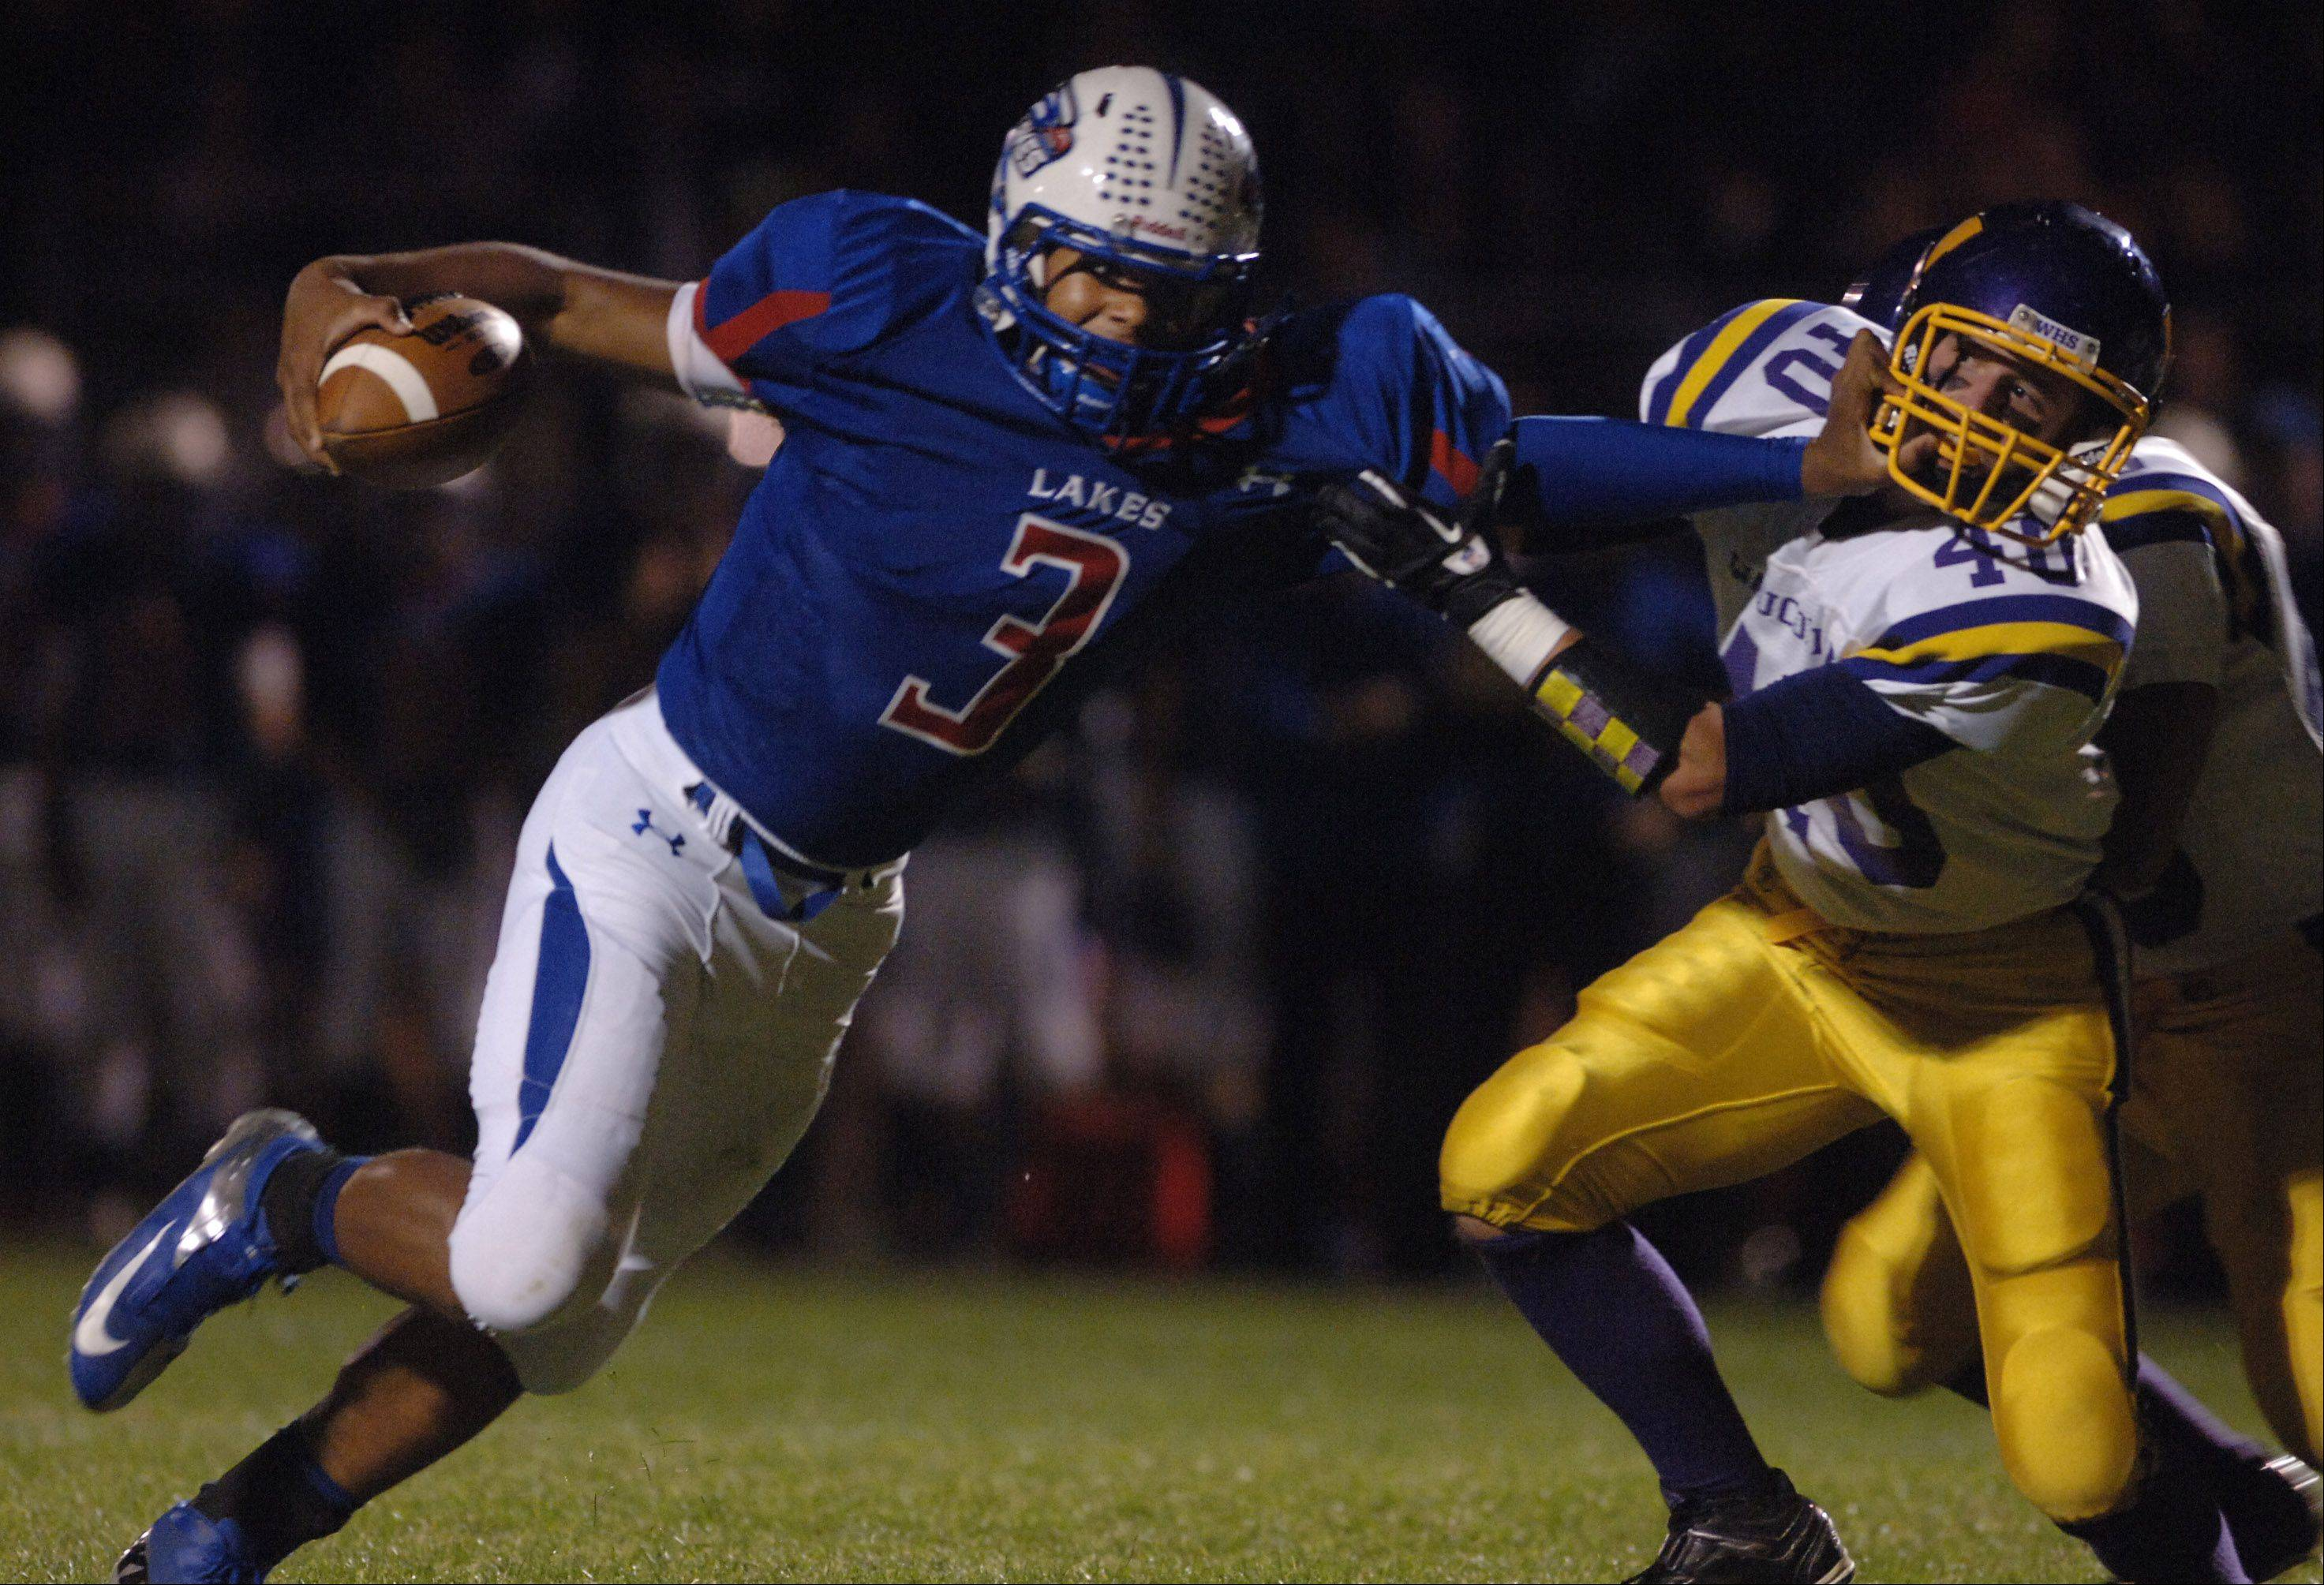 Lakes' T. J. Edwards (3) gives Wauconda's Elliot Hill a shove as he runs a play Friday in Lake Villa.